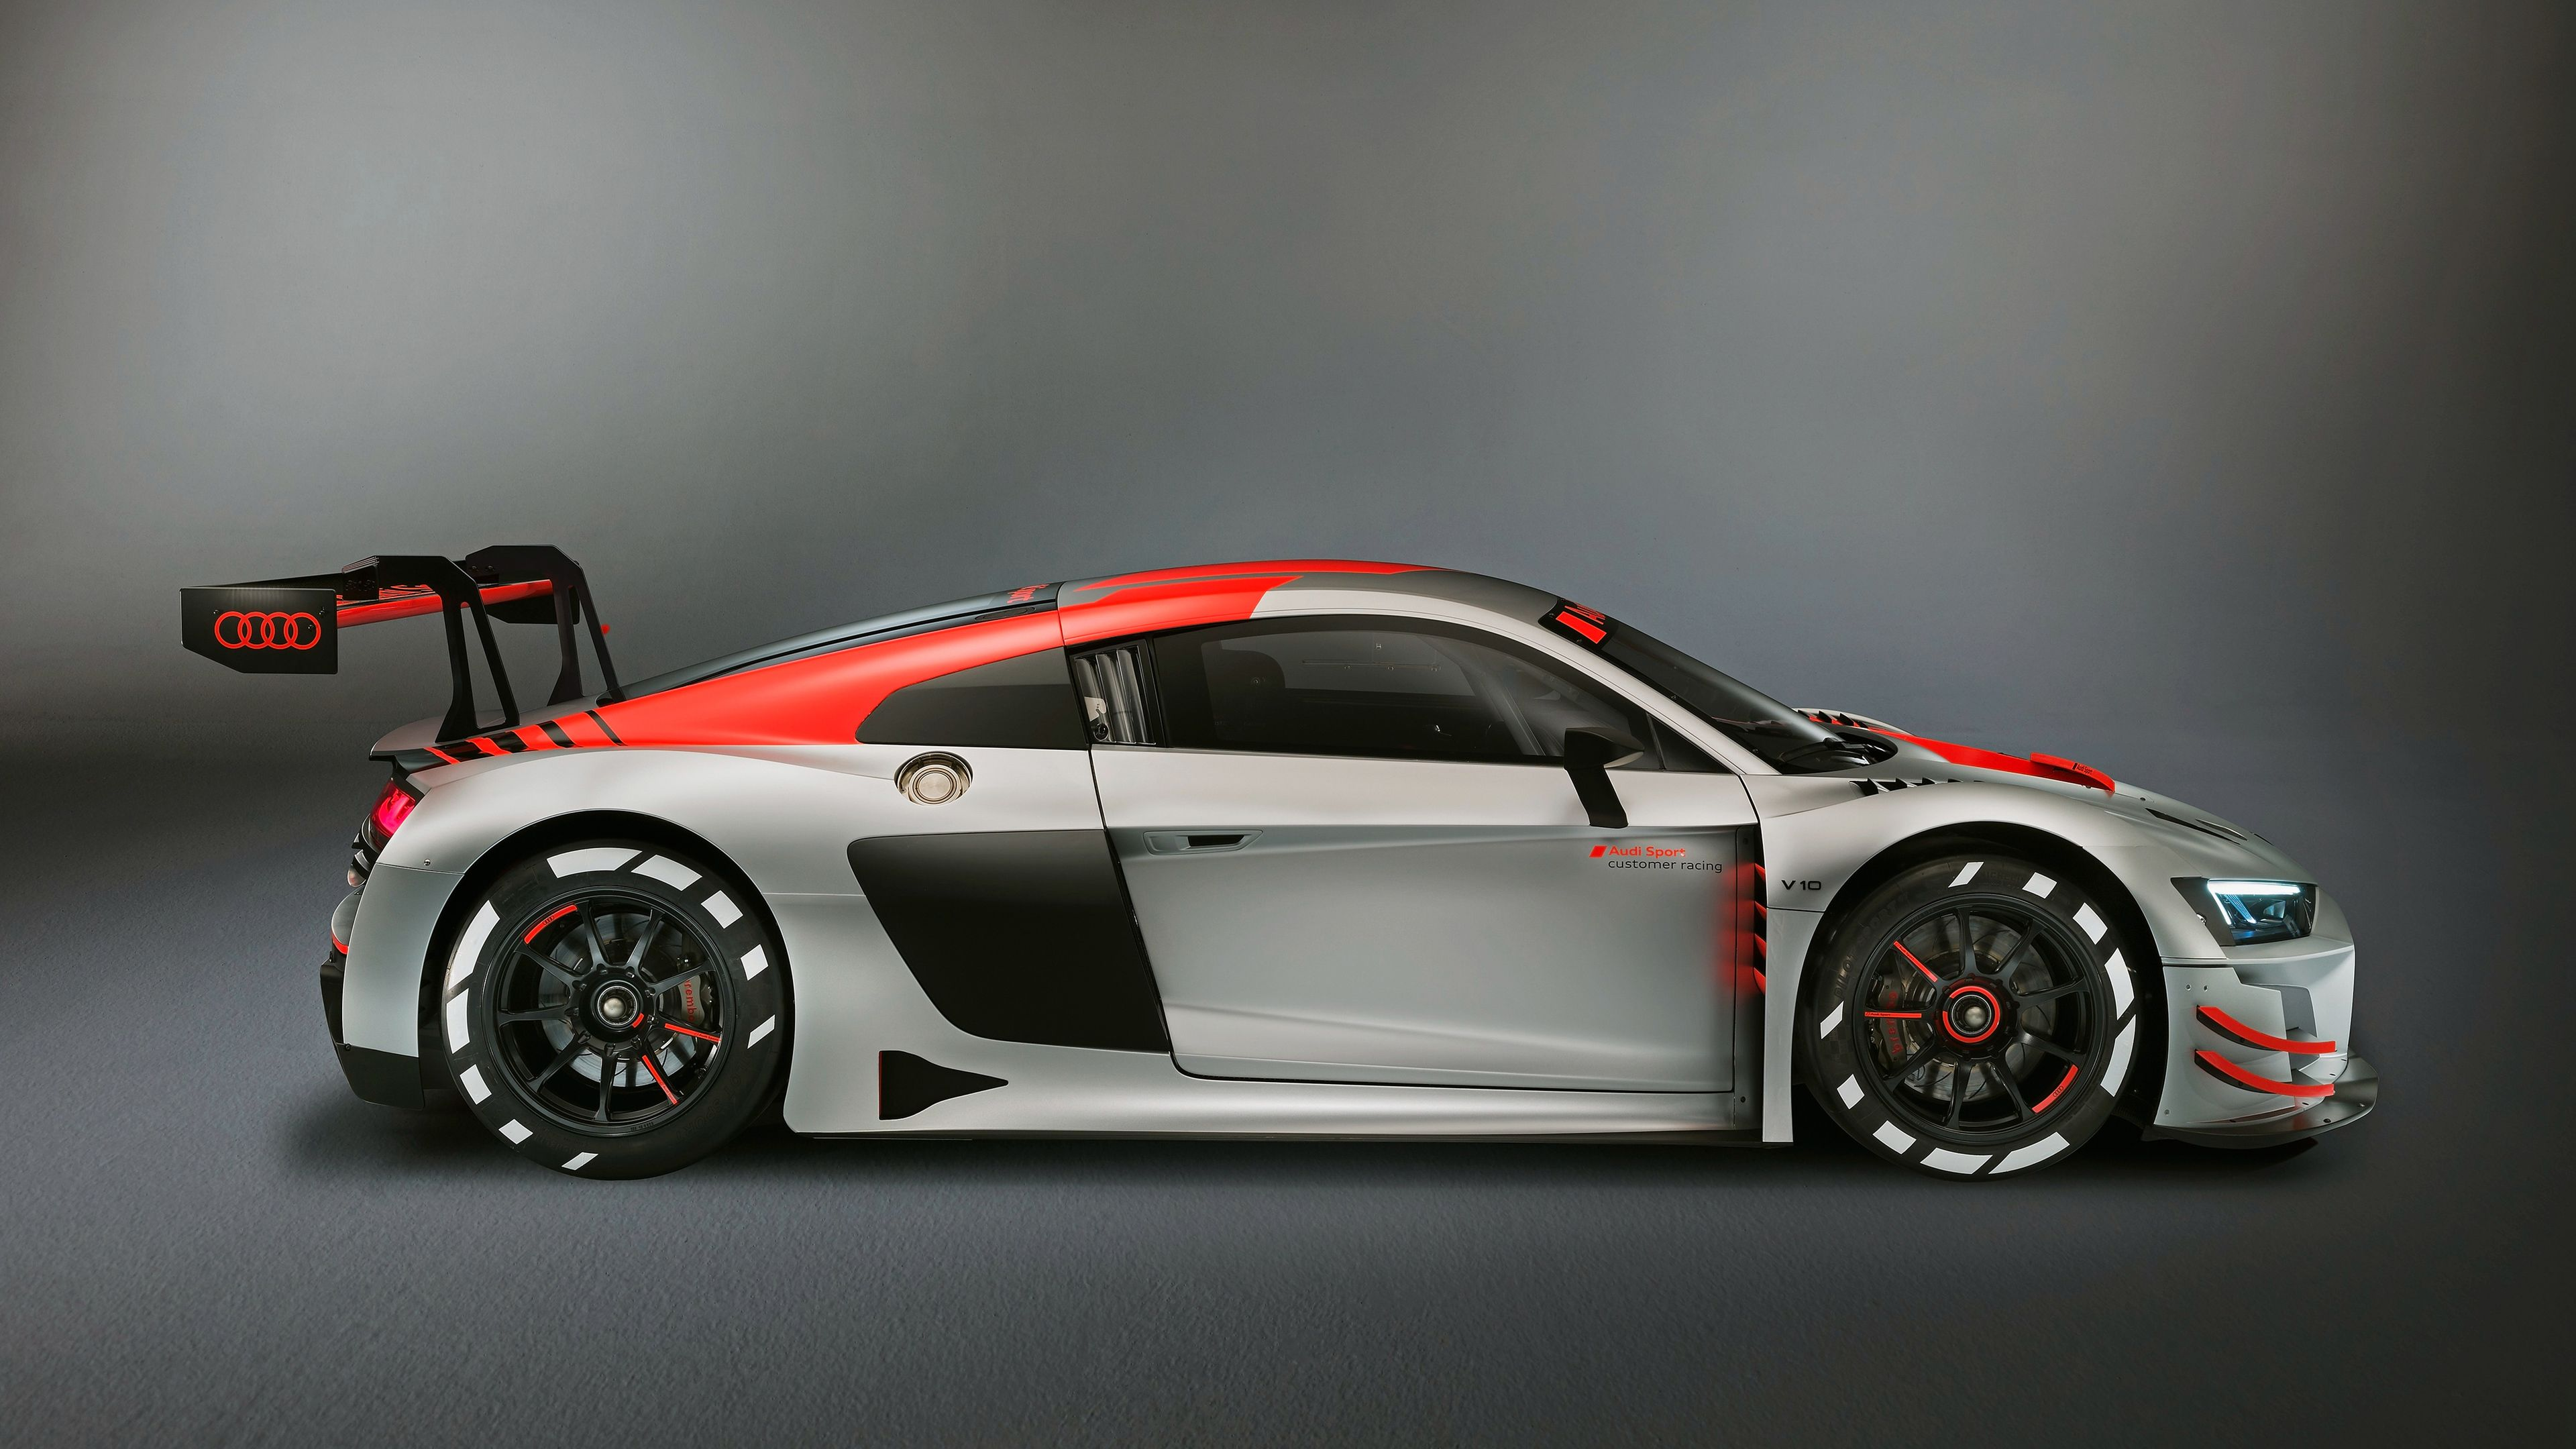 2019 Audi R8 Lms Side View 4k Hd Wallpapers Cars Wallpapers Audi Wallpapers Audi R8 Wallpapers Audi R8 Lms Wallpapers 4k Wallpaper Audi R8 Audi Super Cars